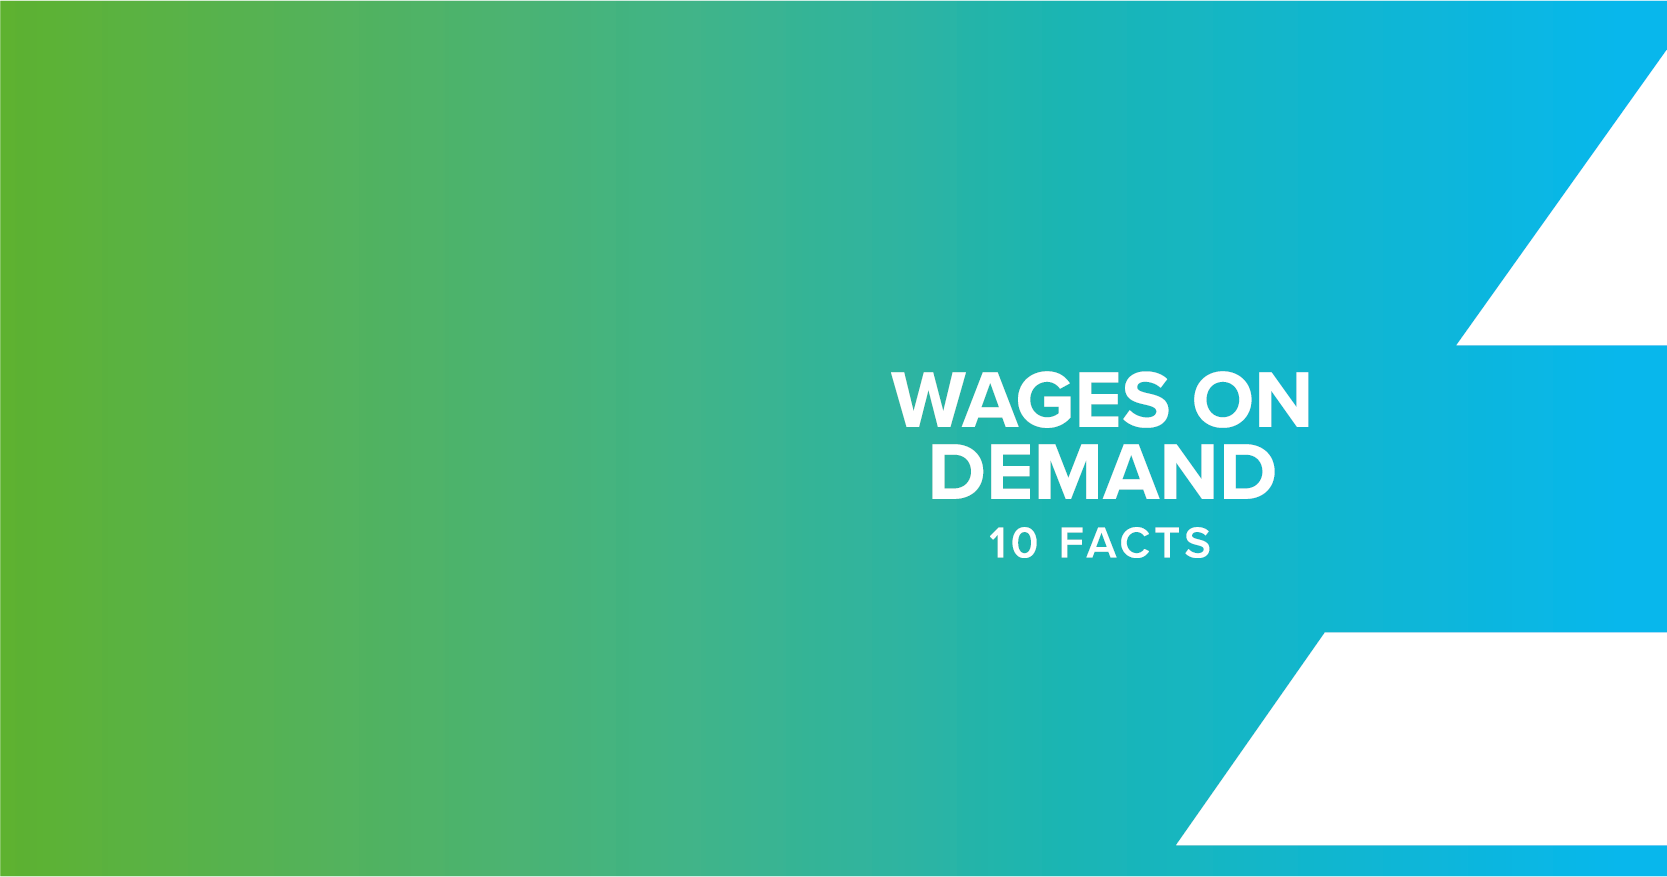 10 Facts on Wages On-Demand